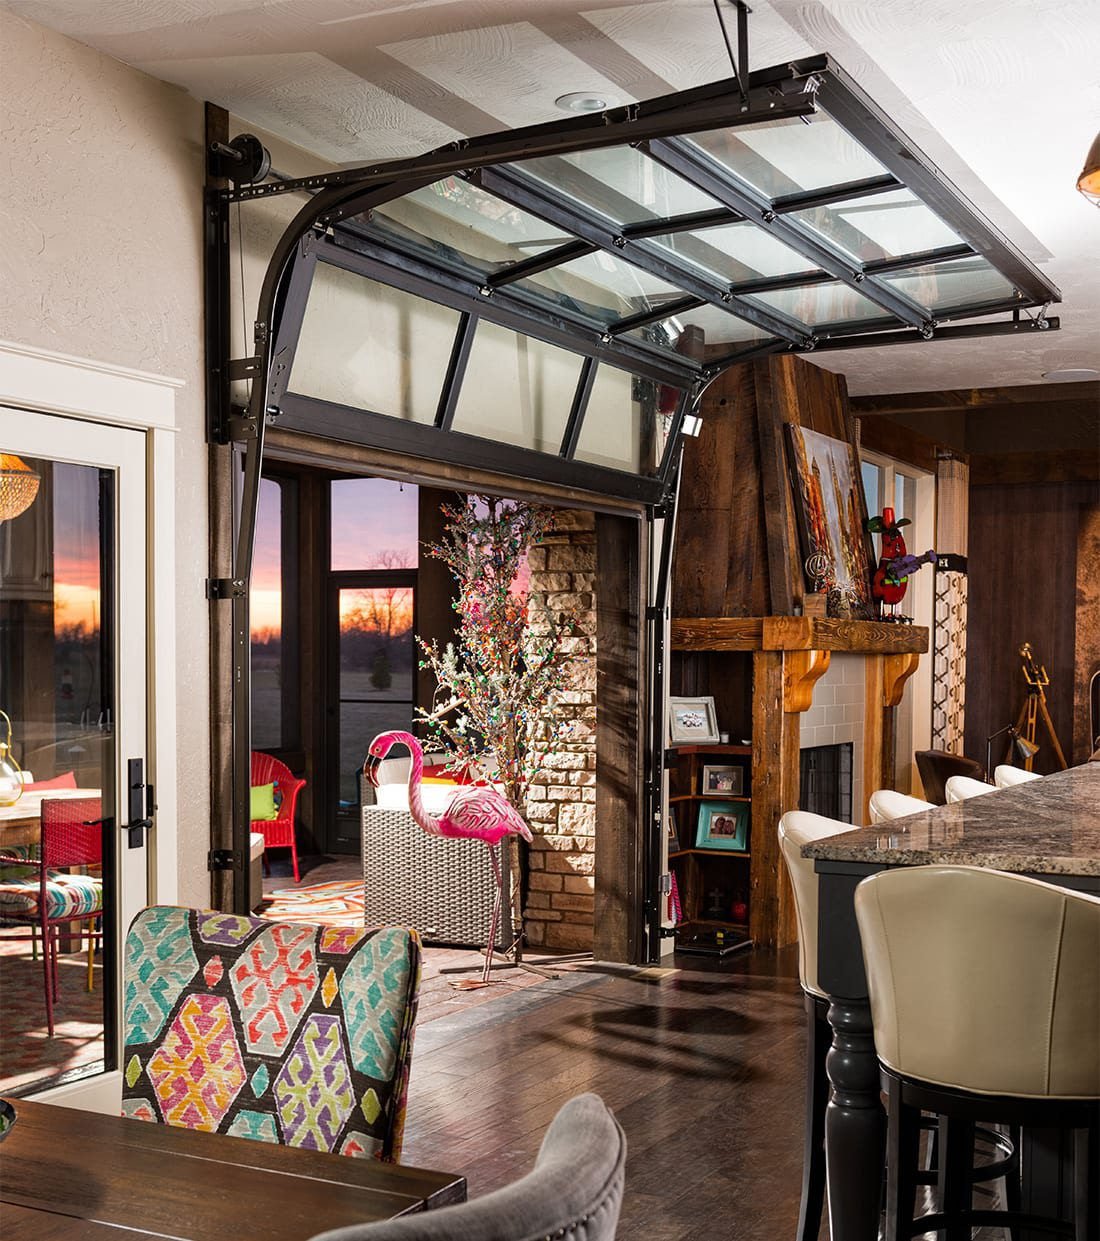 Paul Sundys Eclectic Home